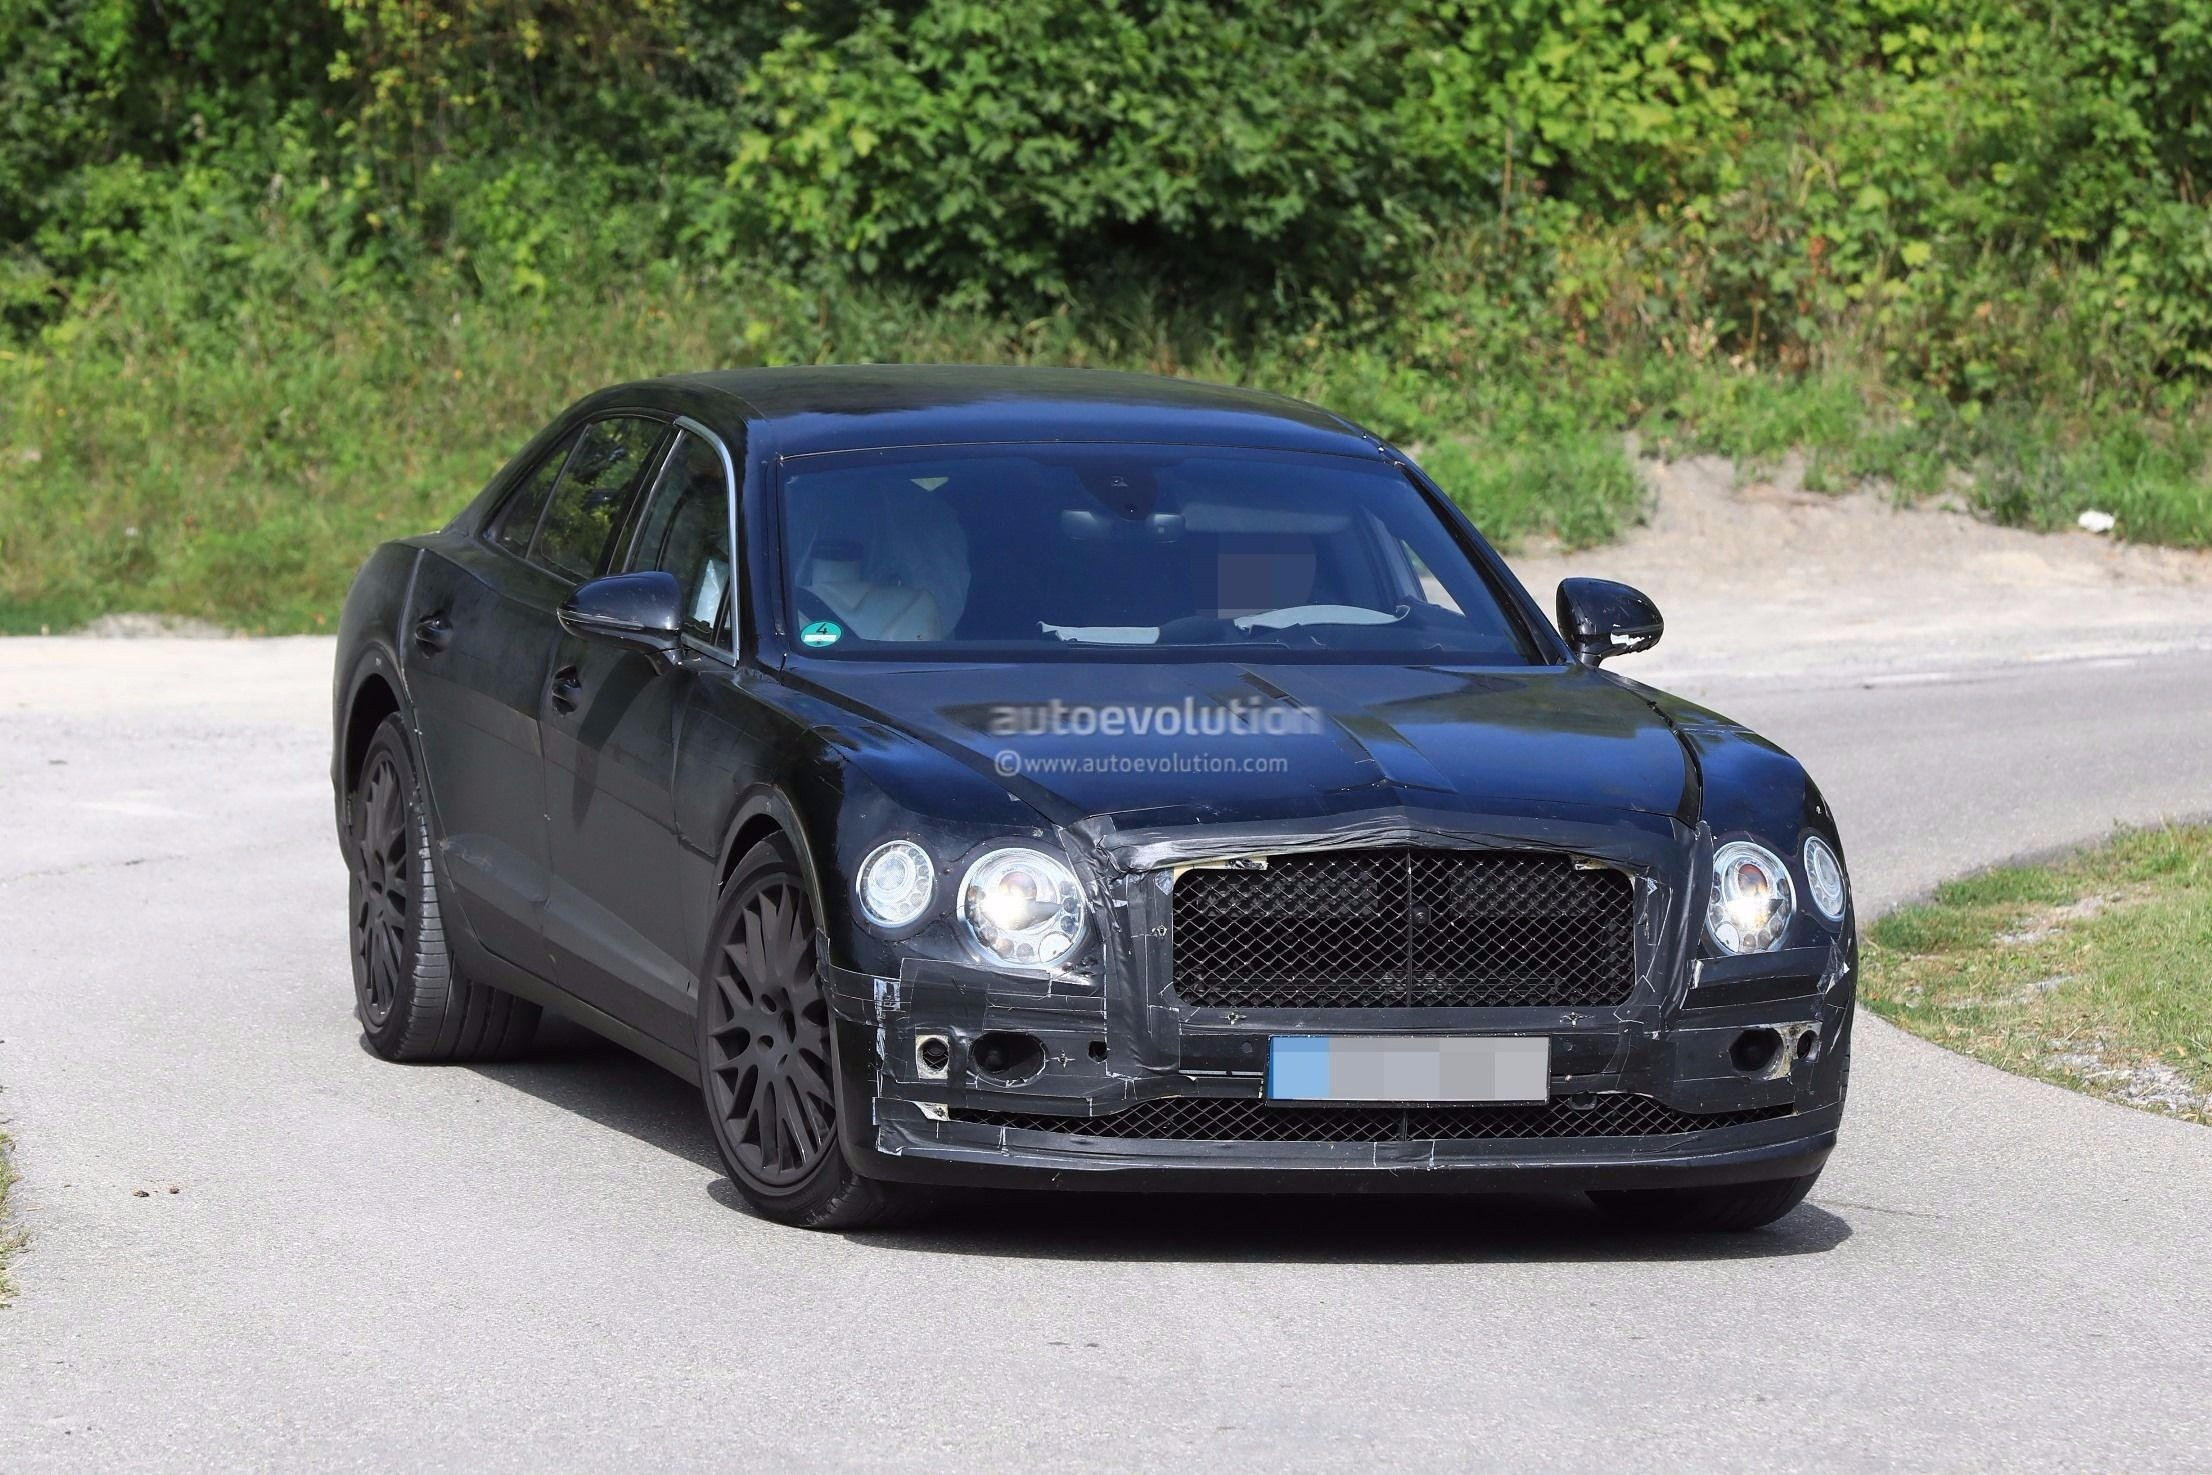 2019 Bentley Flying Spur Spied Testing With a Headless ...